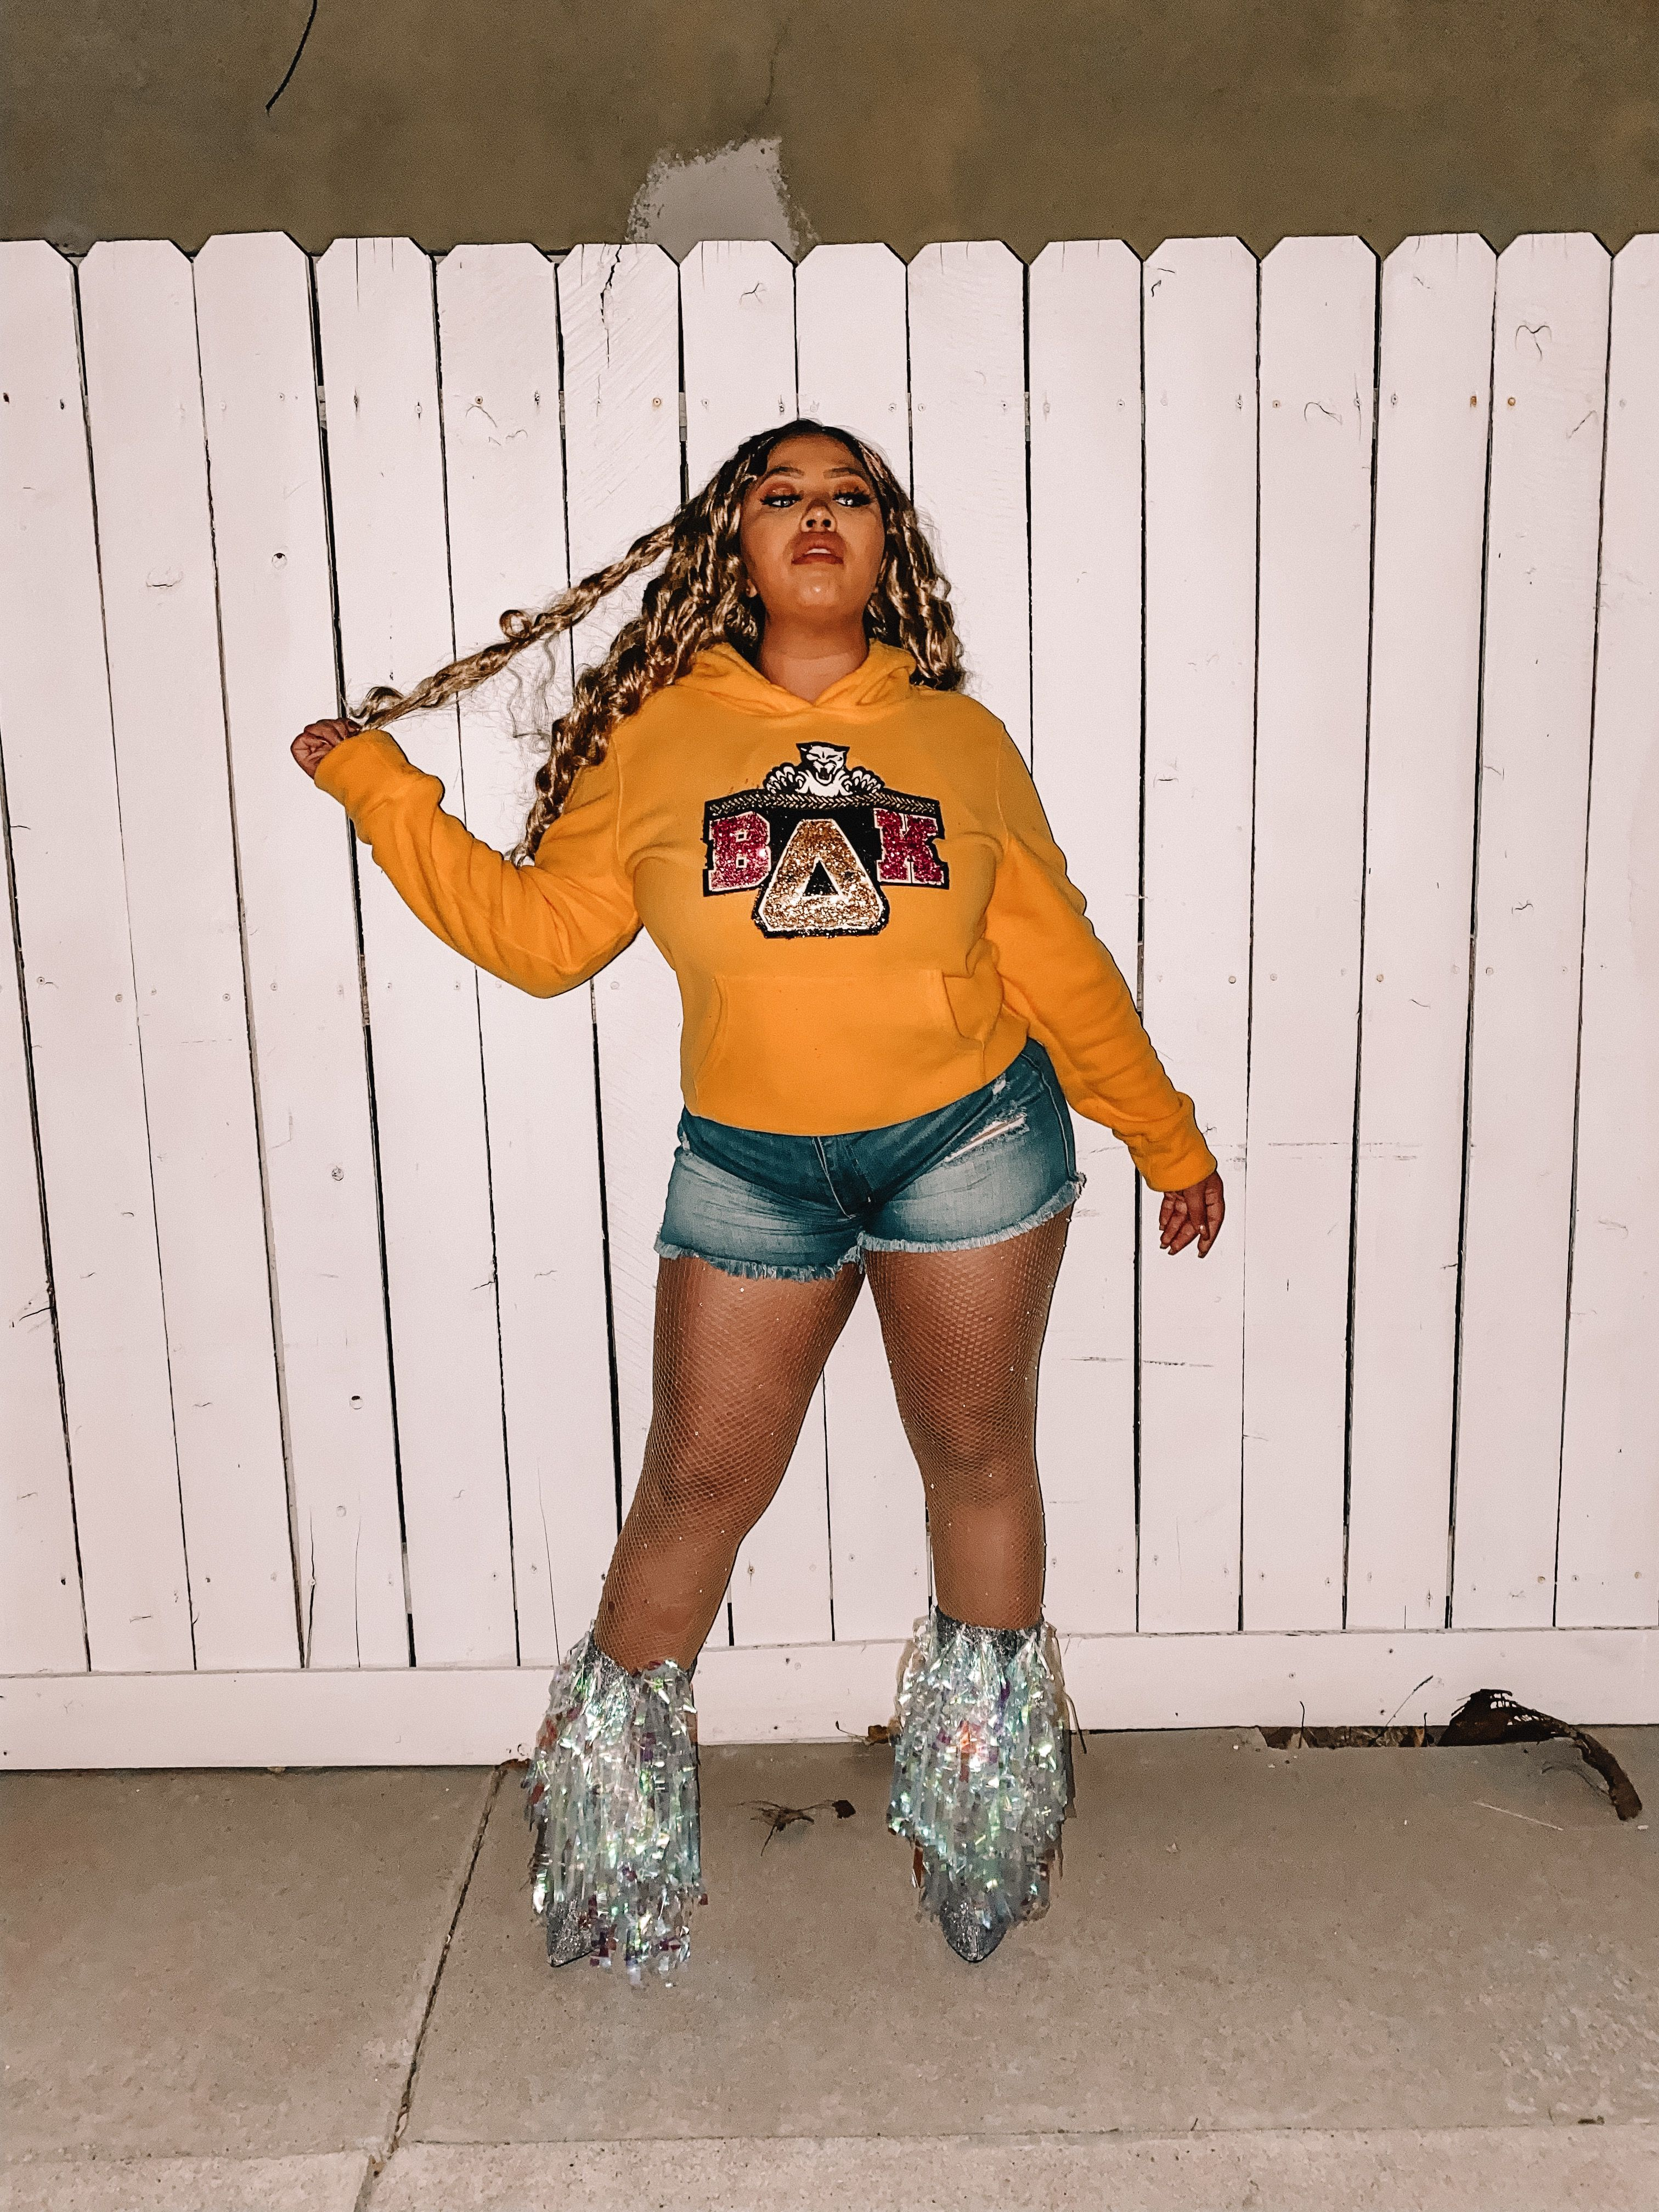 This is Beyoncé's Coachella outfit. Wig Wish Sweater